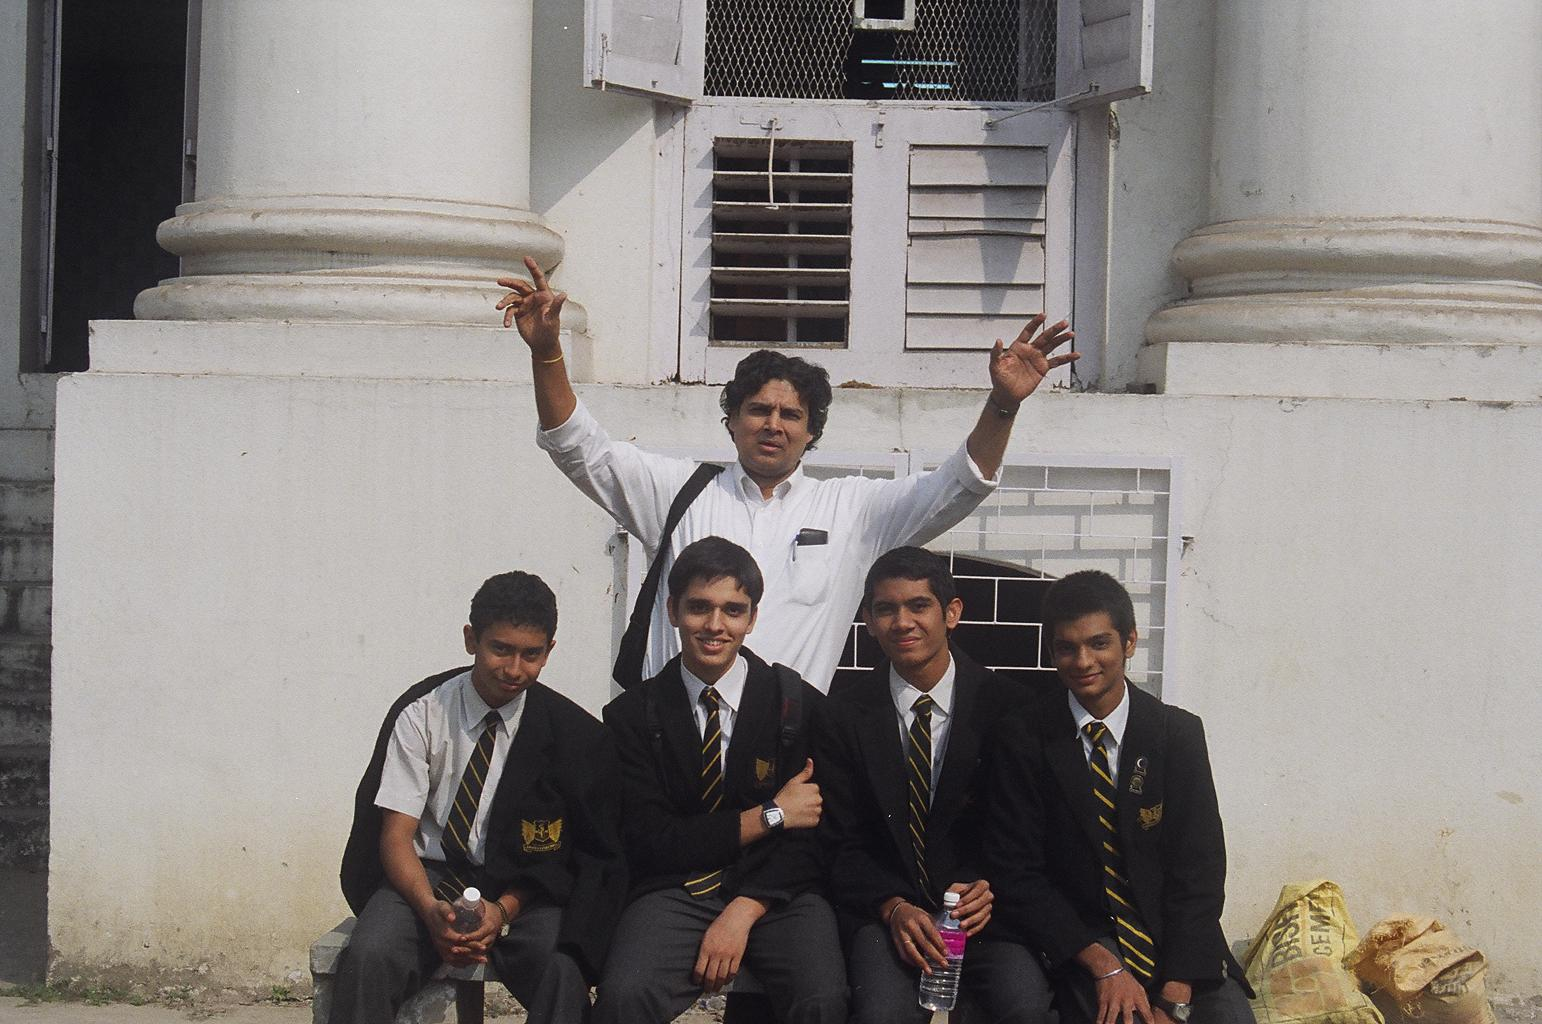 Myself visiting La-Martiniere School in Calcutta, India